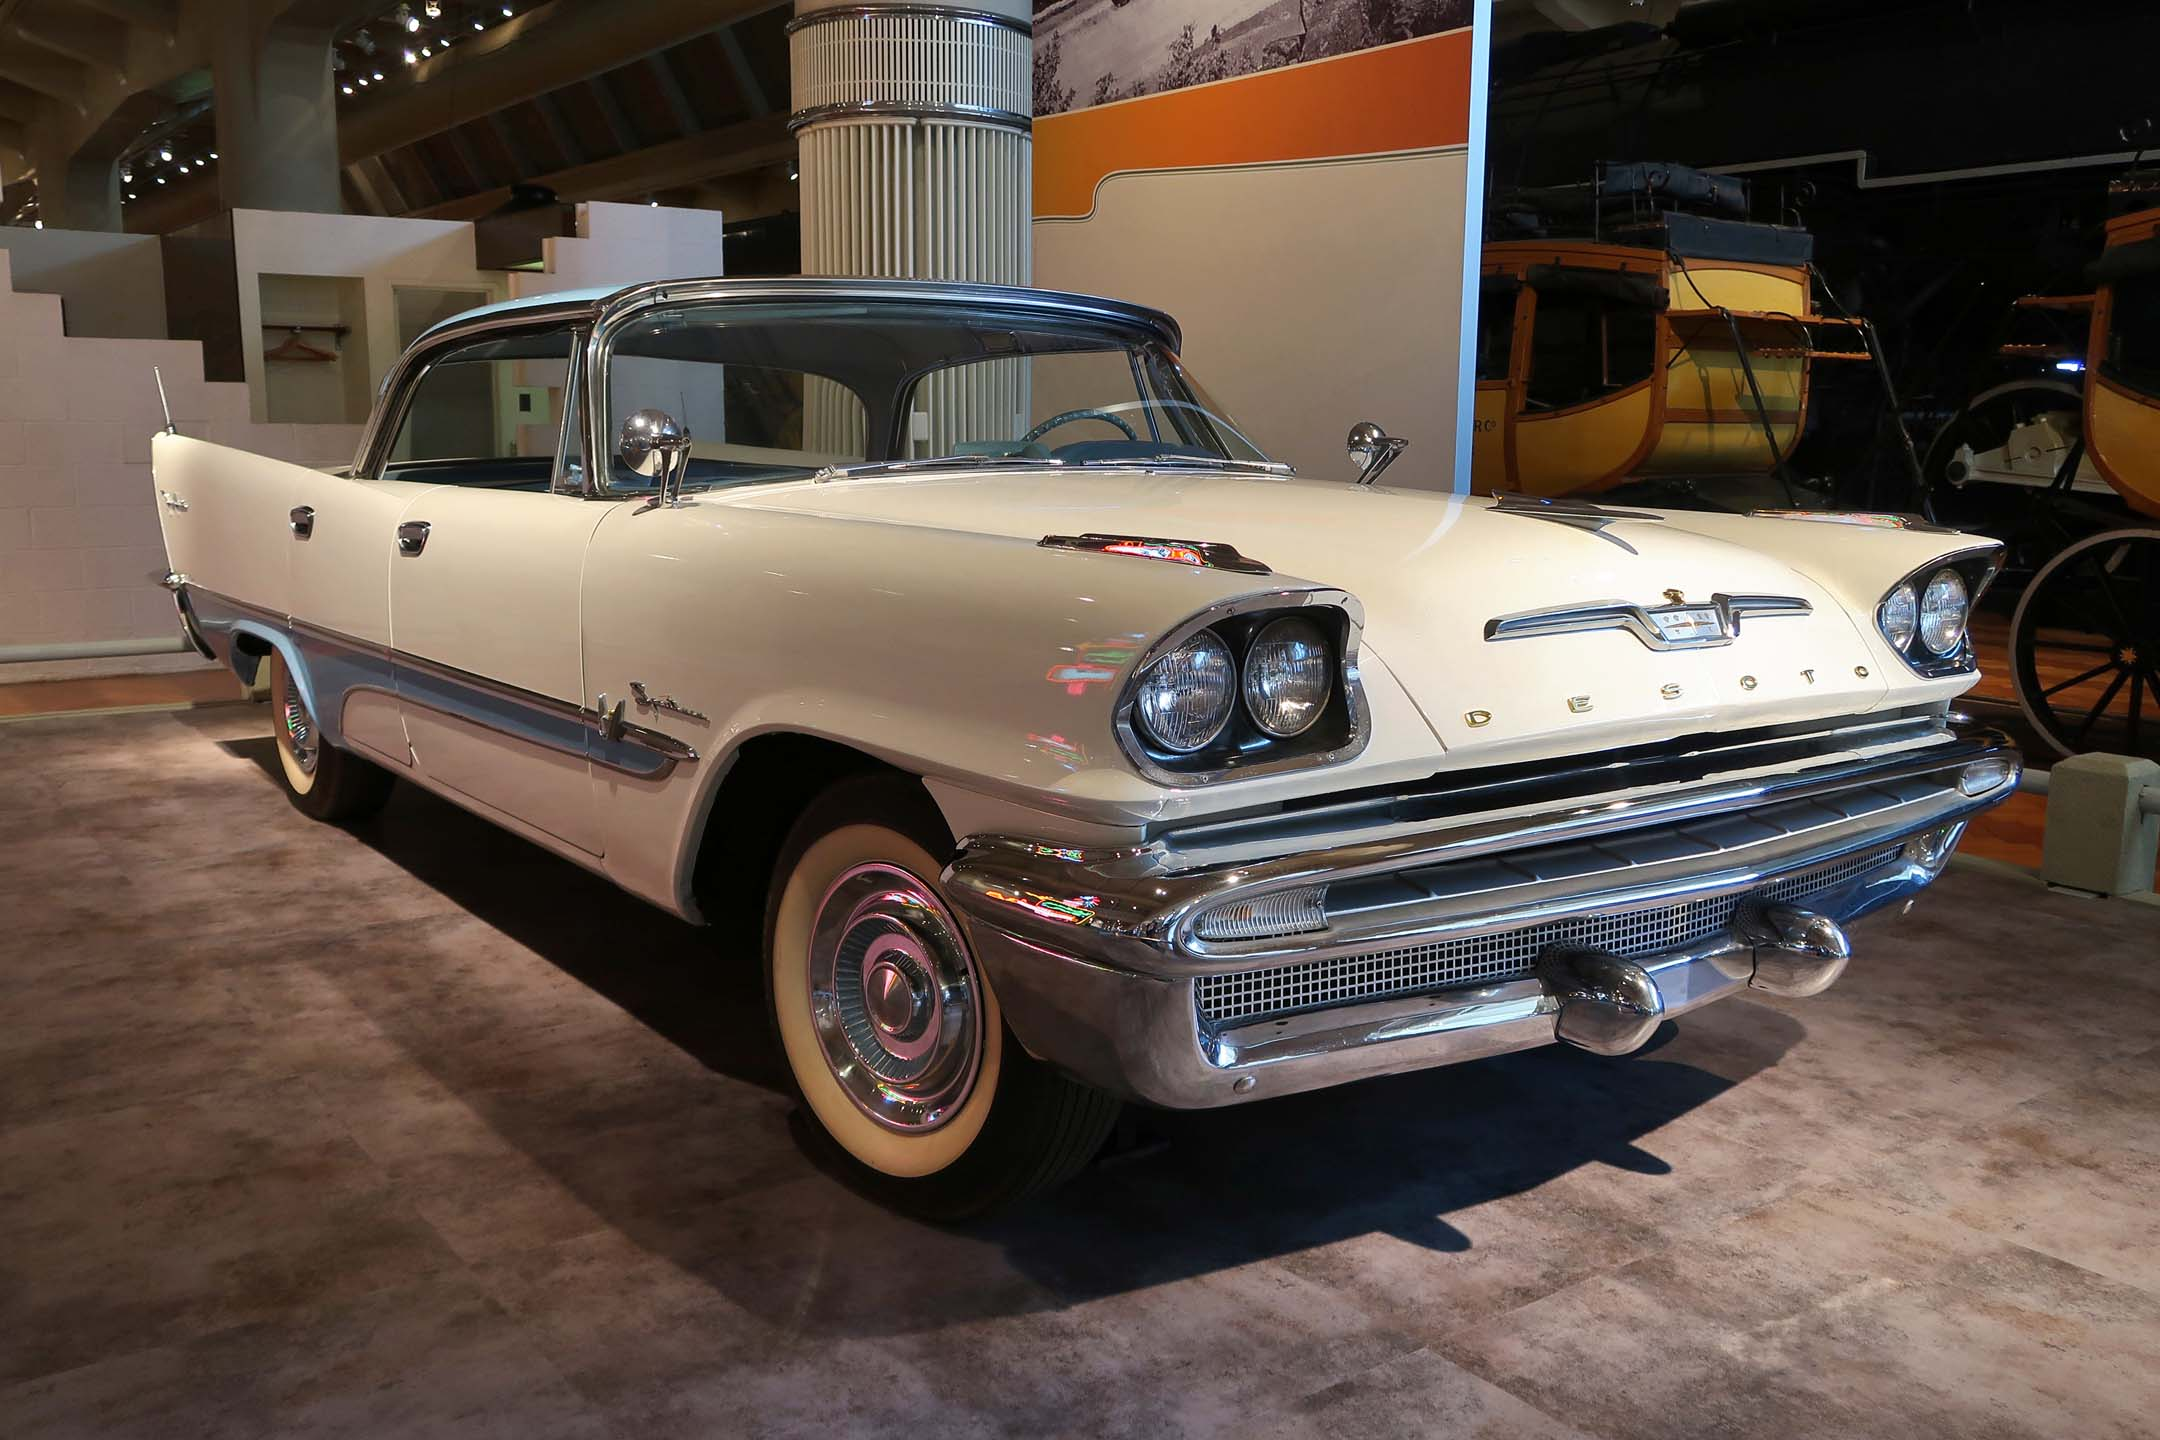 A 1957 DeSoto Fireflite, a Chrysler brand that was made from 1928 to 1960